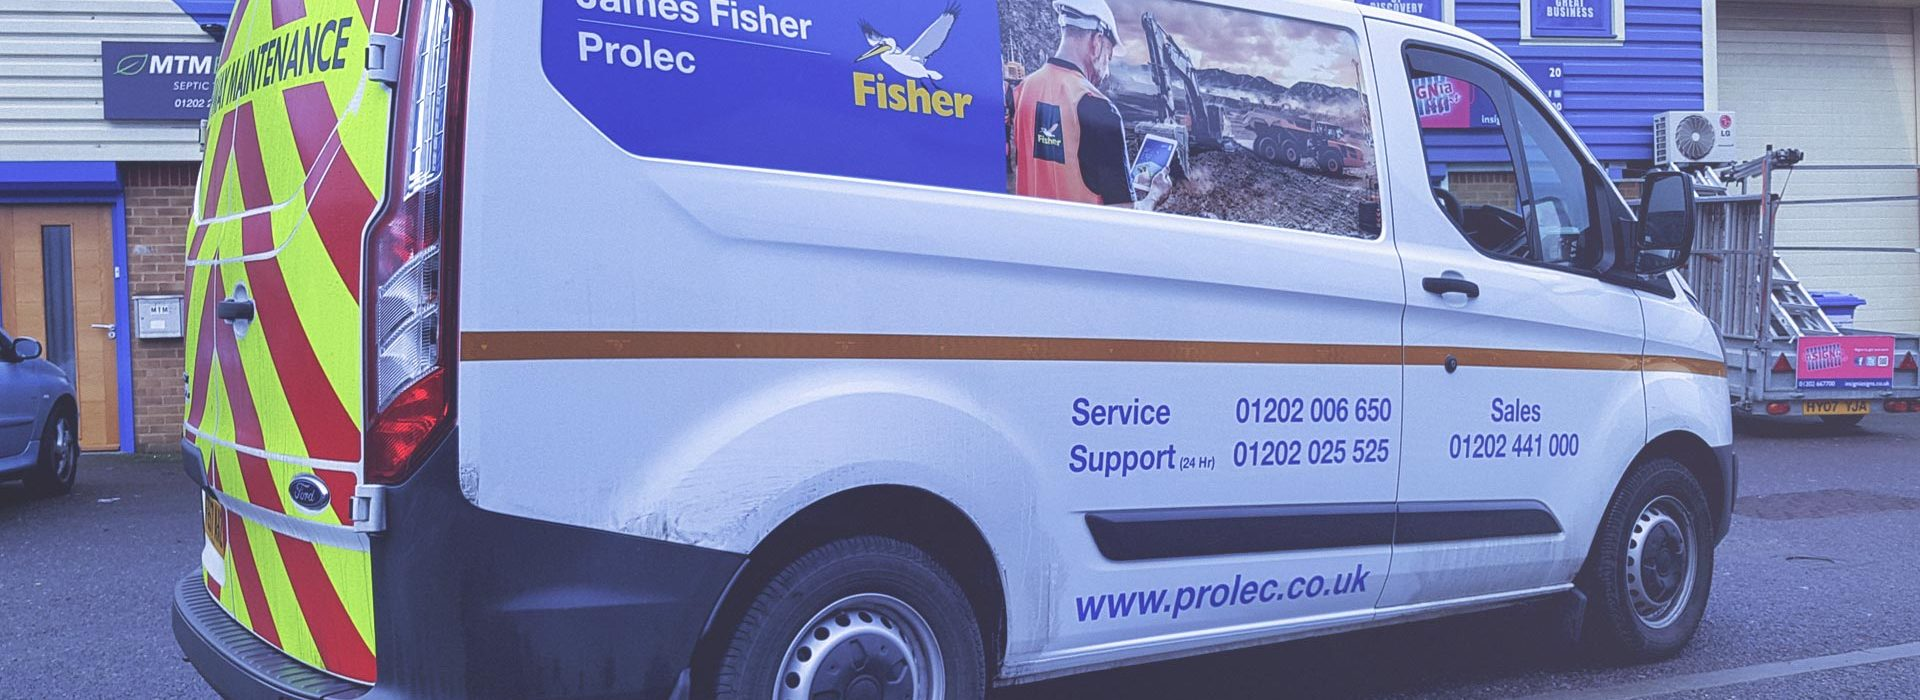 James Fisher Prolec Vehicle Wrapping